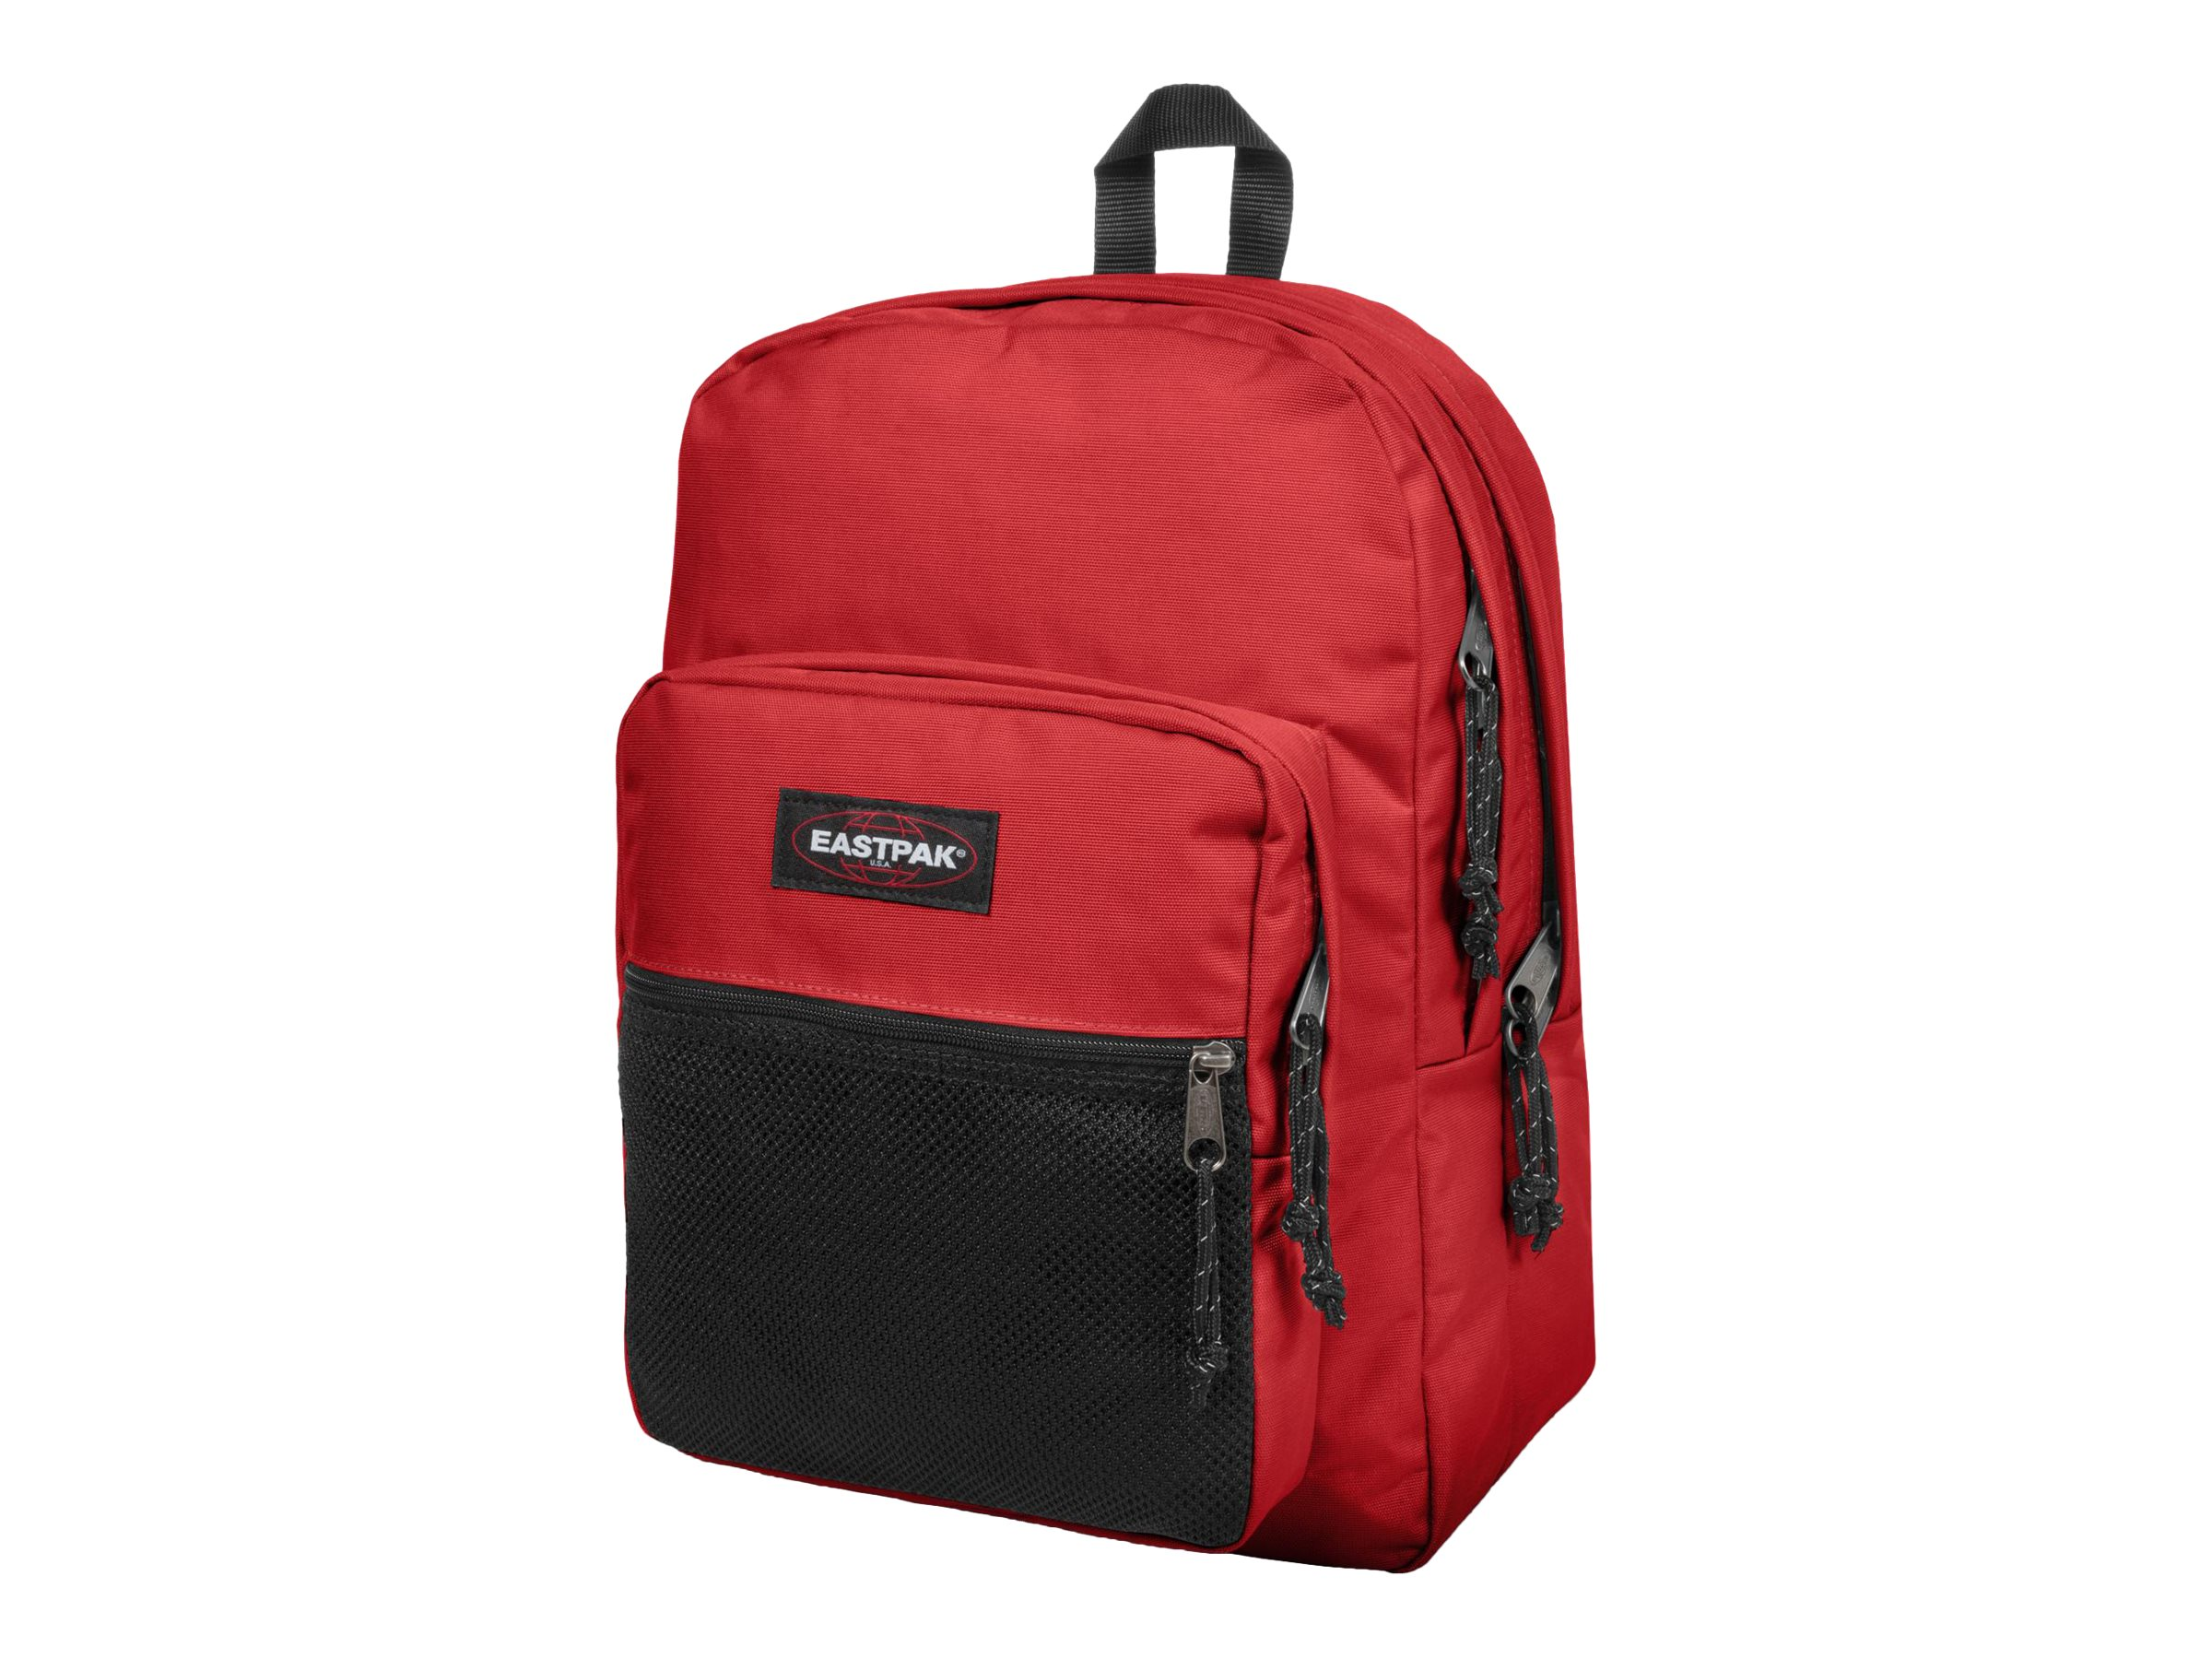 en soldes 6e018 9a602 EASTPAK Pinnacle - Sac à dos - 42 cm - Apple pick red